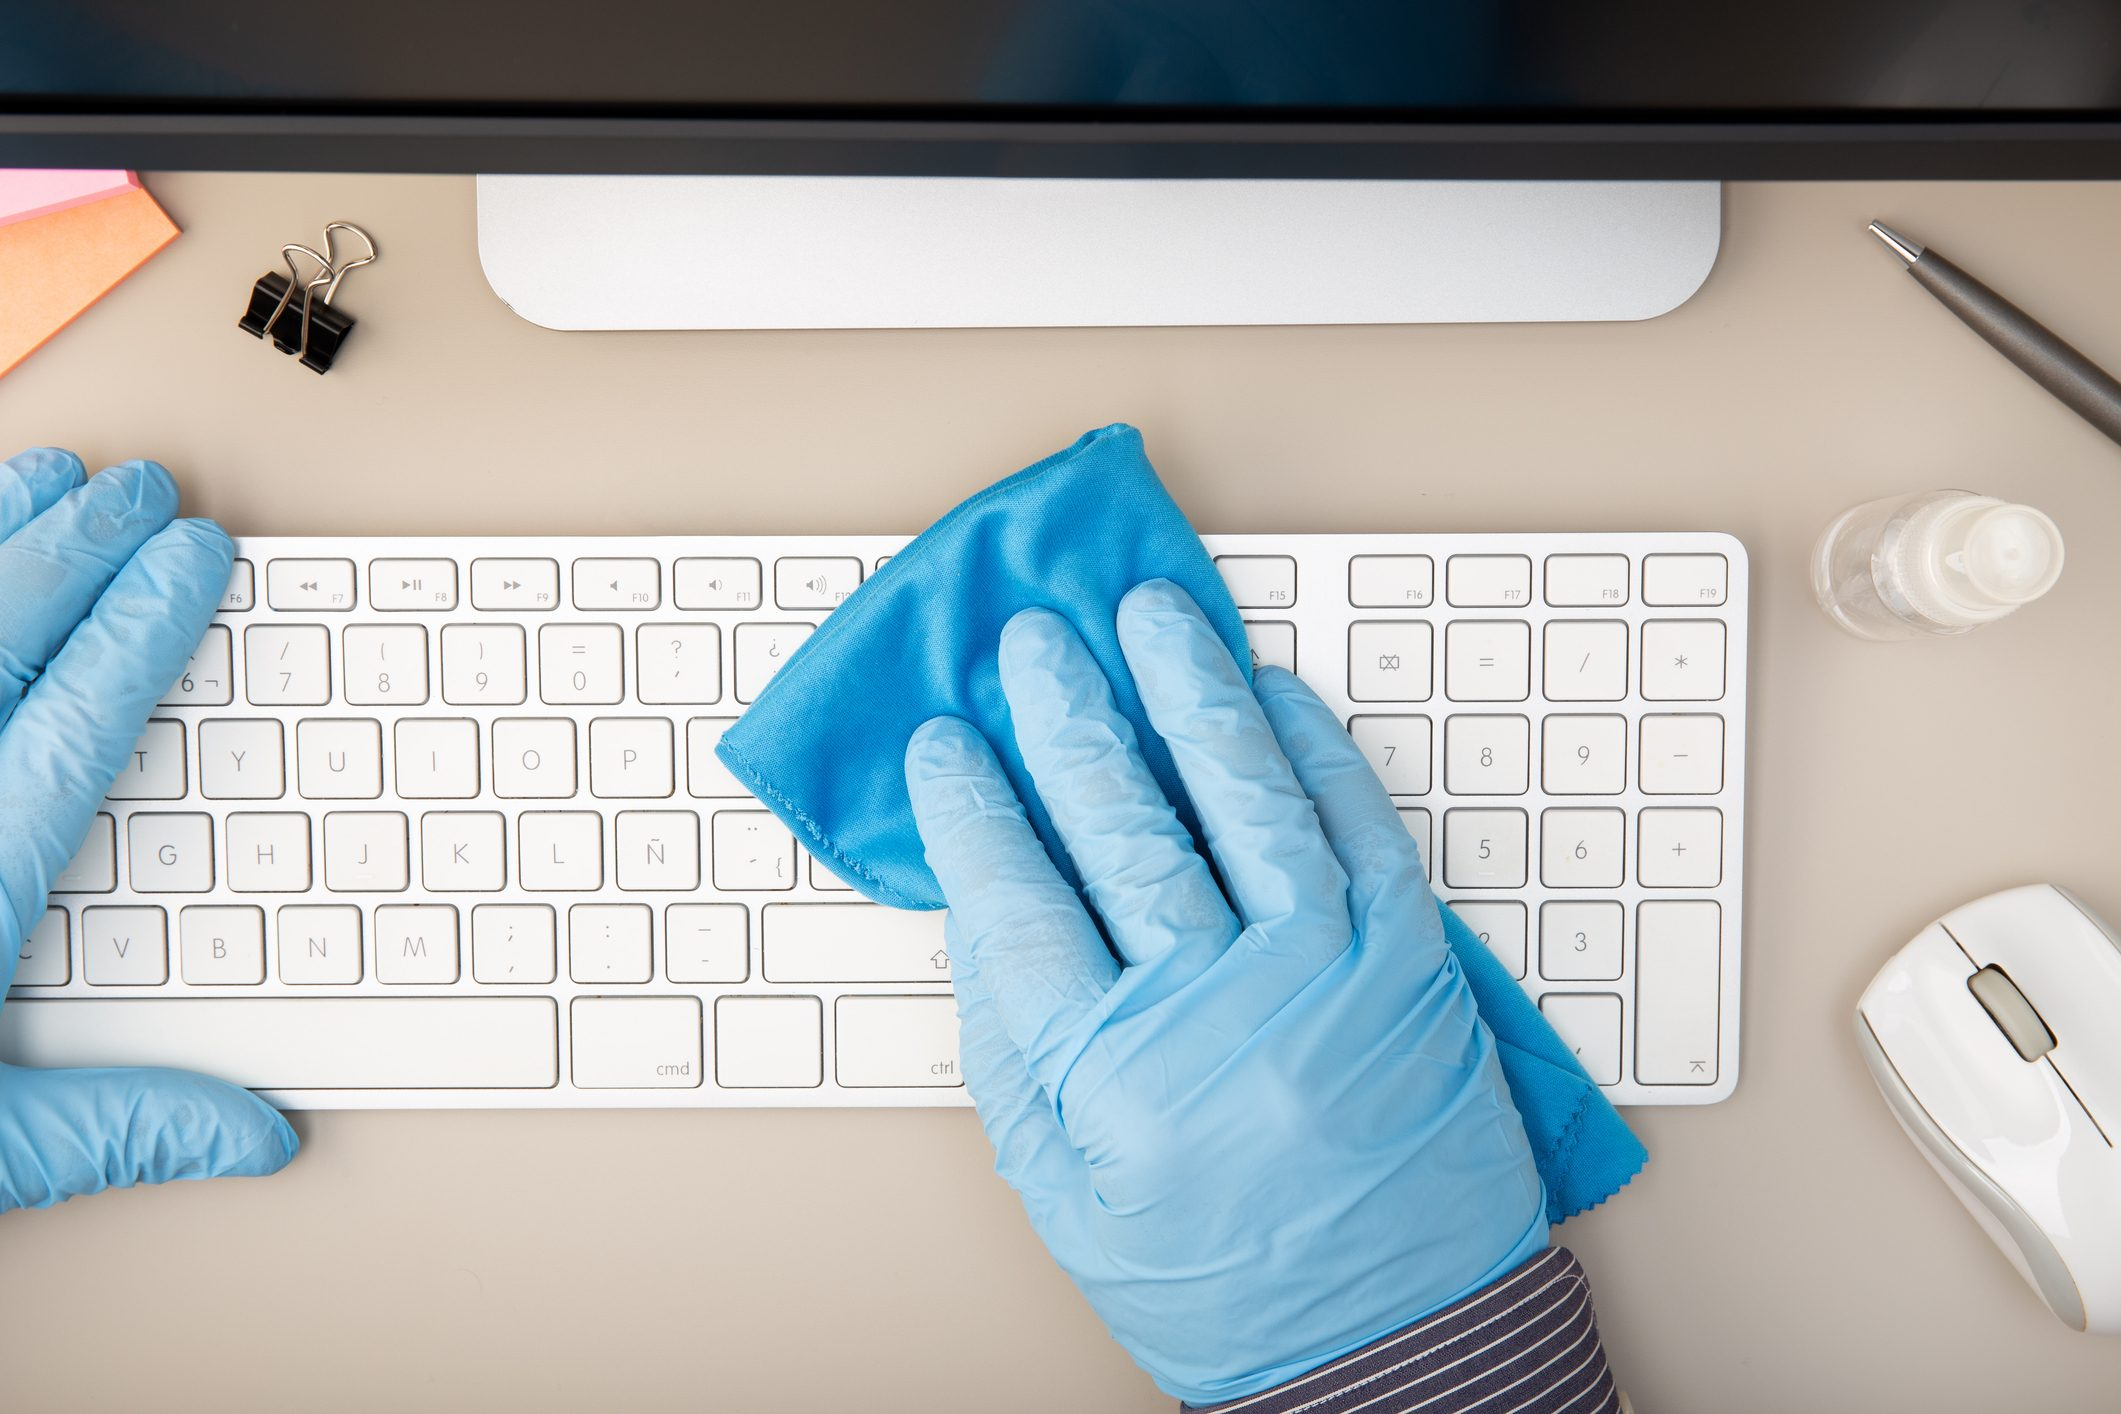 Cropped Hands Wearing Gloves Cleaning Keyboard On Desk